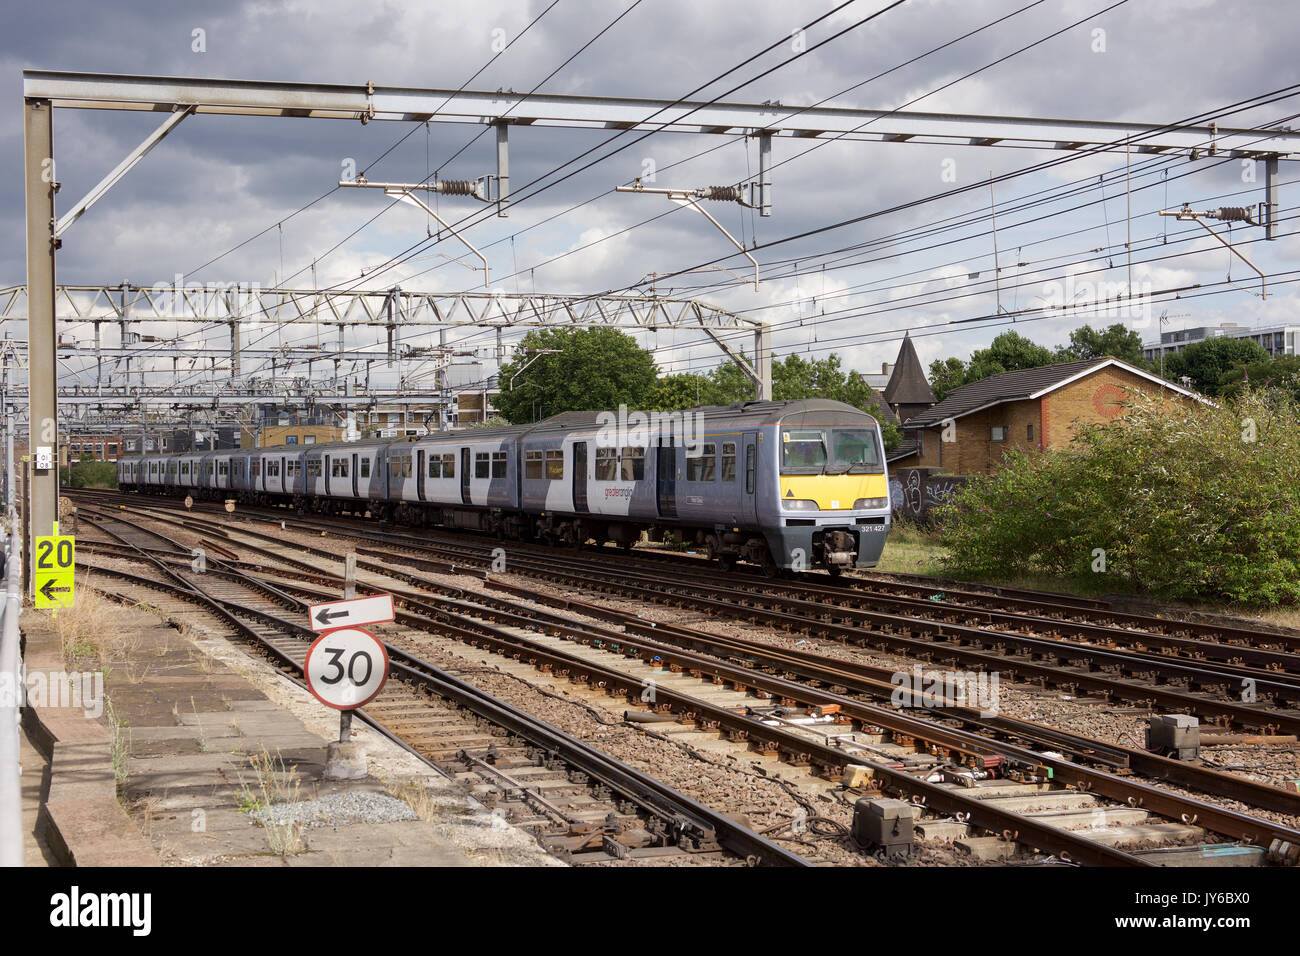 Greater Anglia Electric Multiple Unit train passing Bethnal Green in London - Stock Image